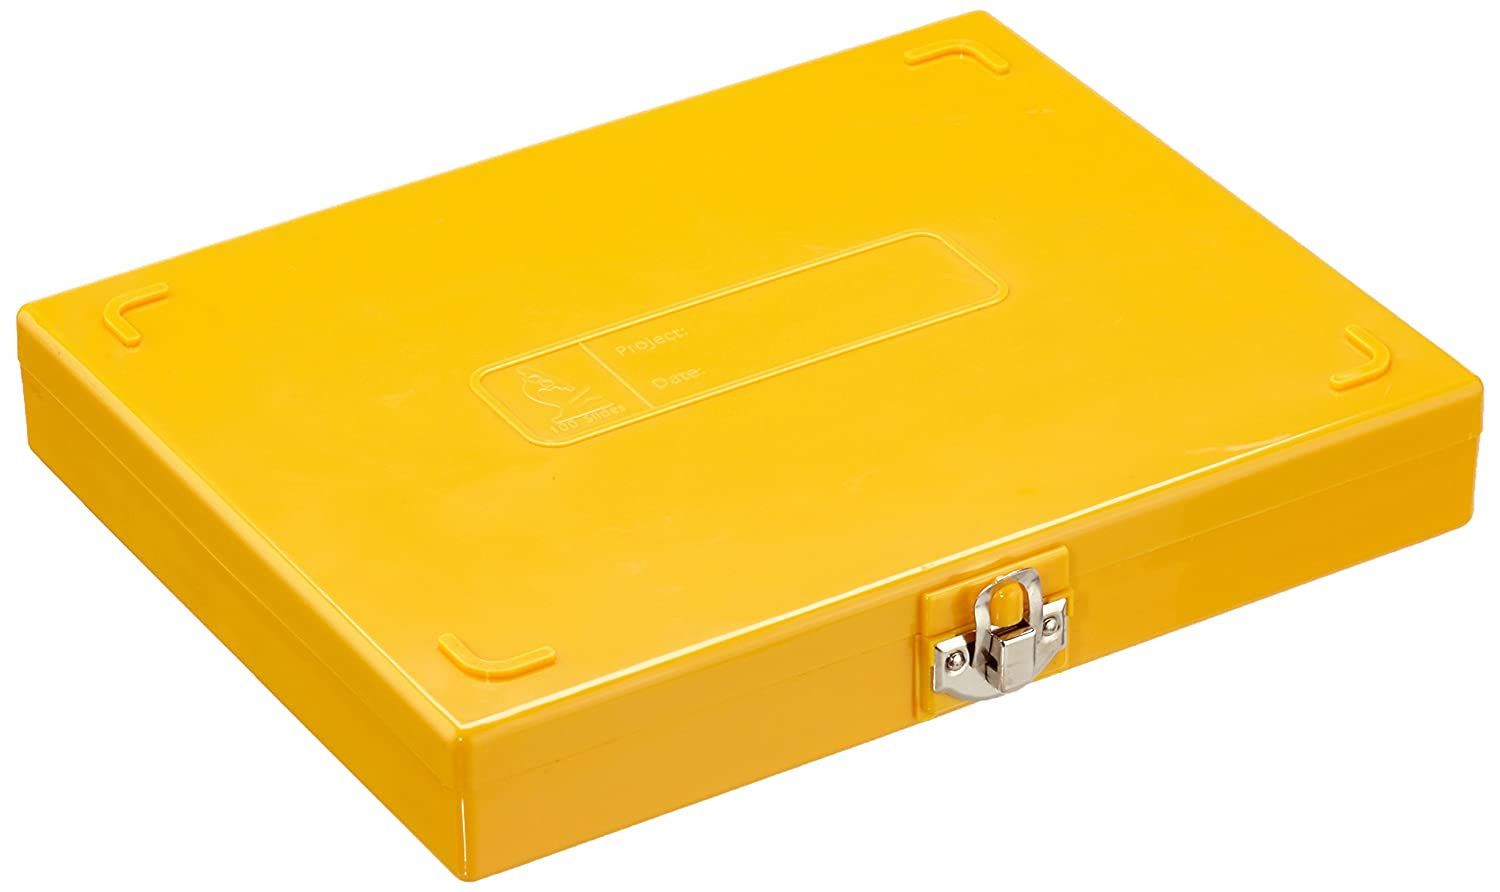 Neolab E 0040  Slide Boxes Economy  –   Yellow (Pack of 5) E-0040